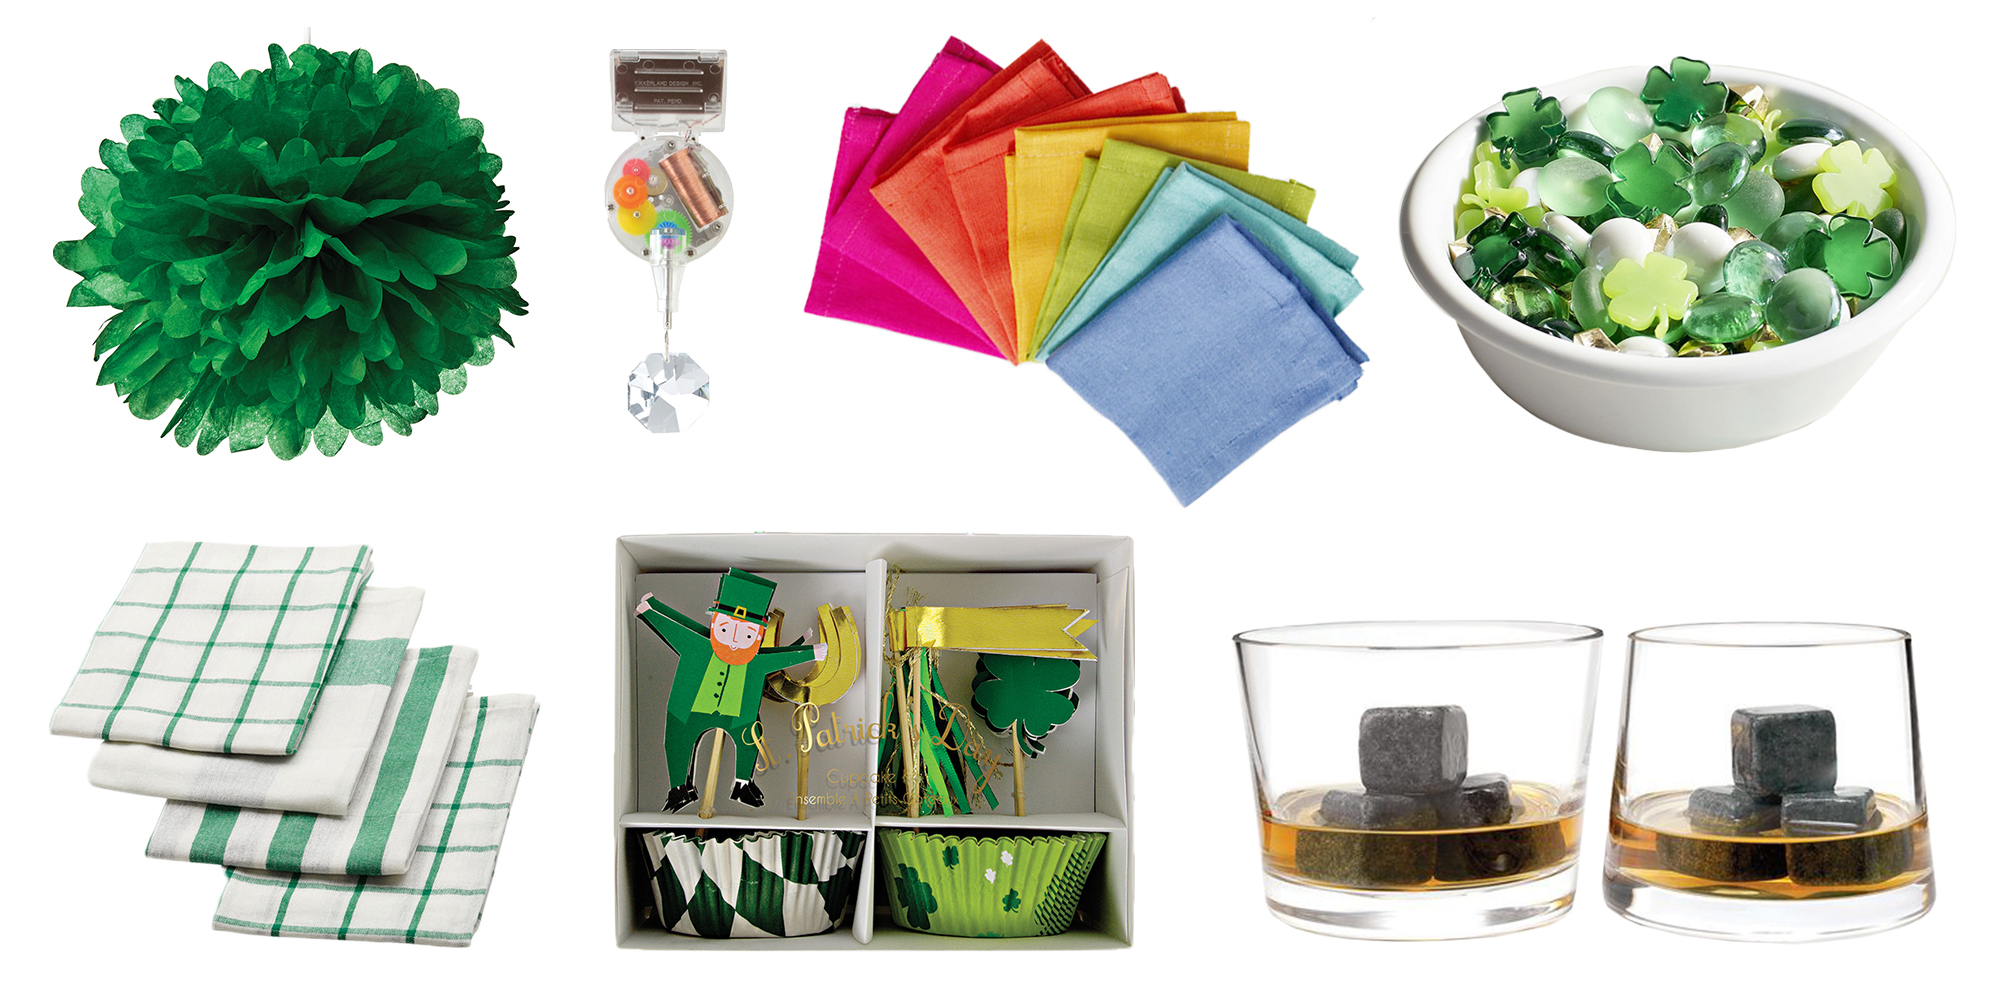 12 Best St. Patrick's Day Decorations 2018 - Green Decor ...